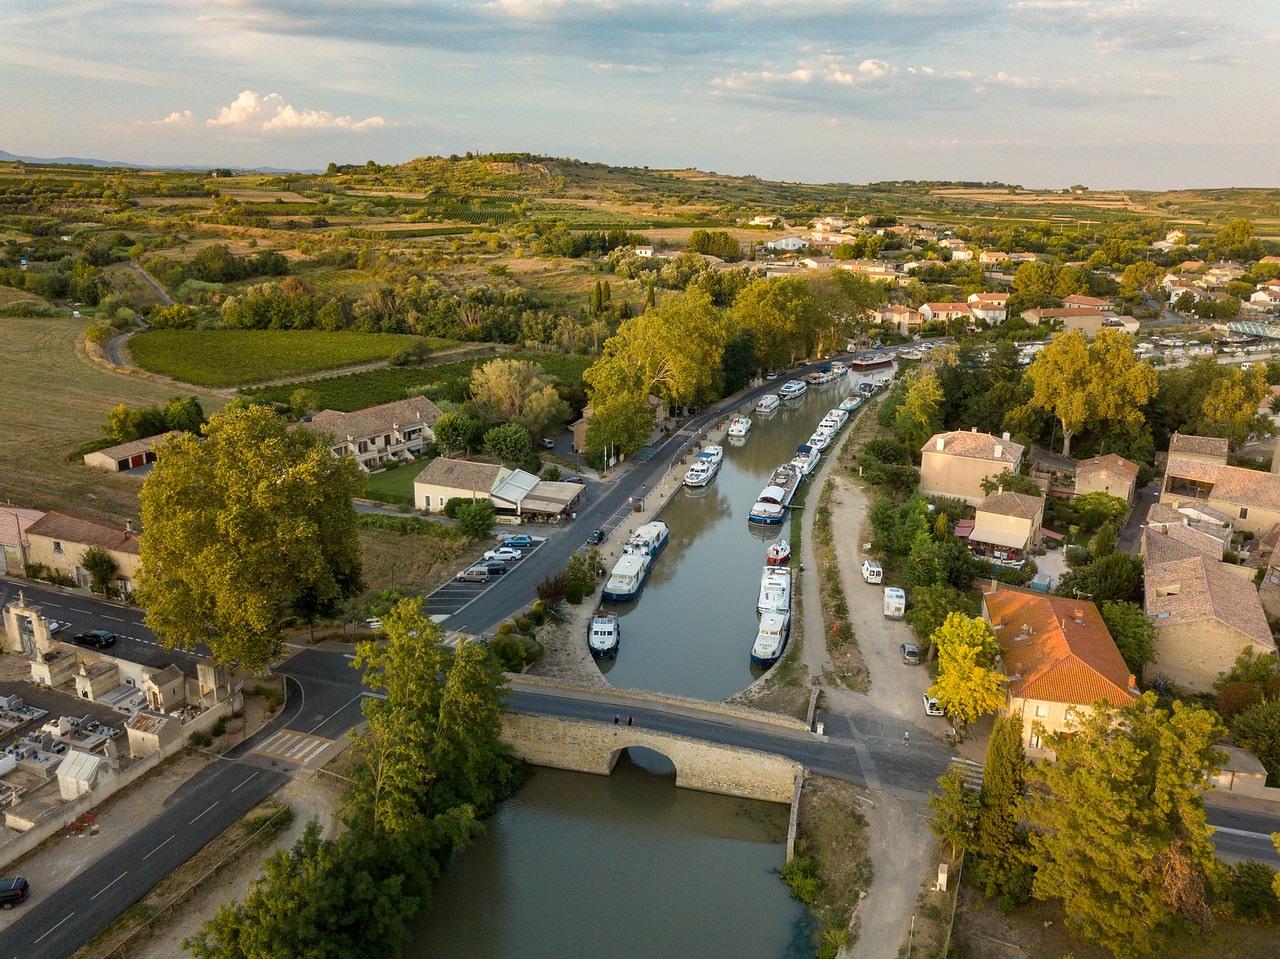 Drone View of Barges on the Canal du Midi in Campestang, France